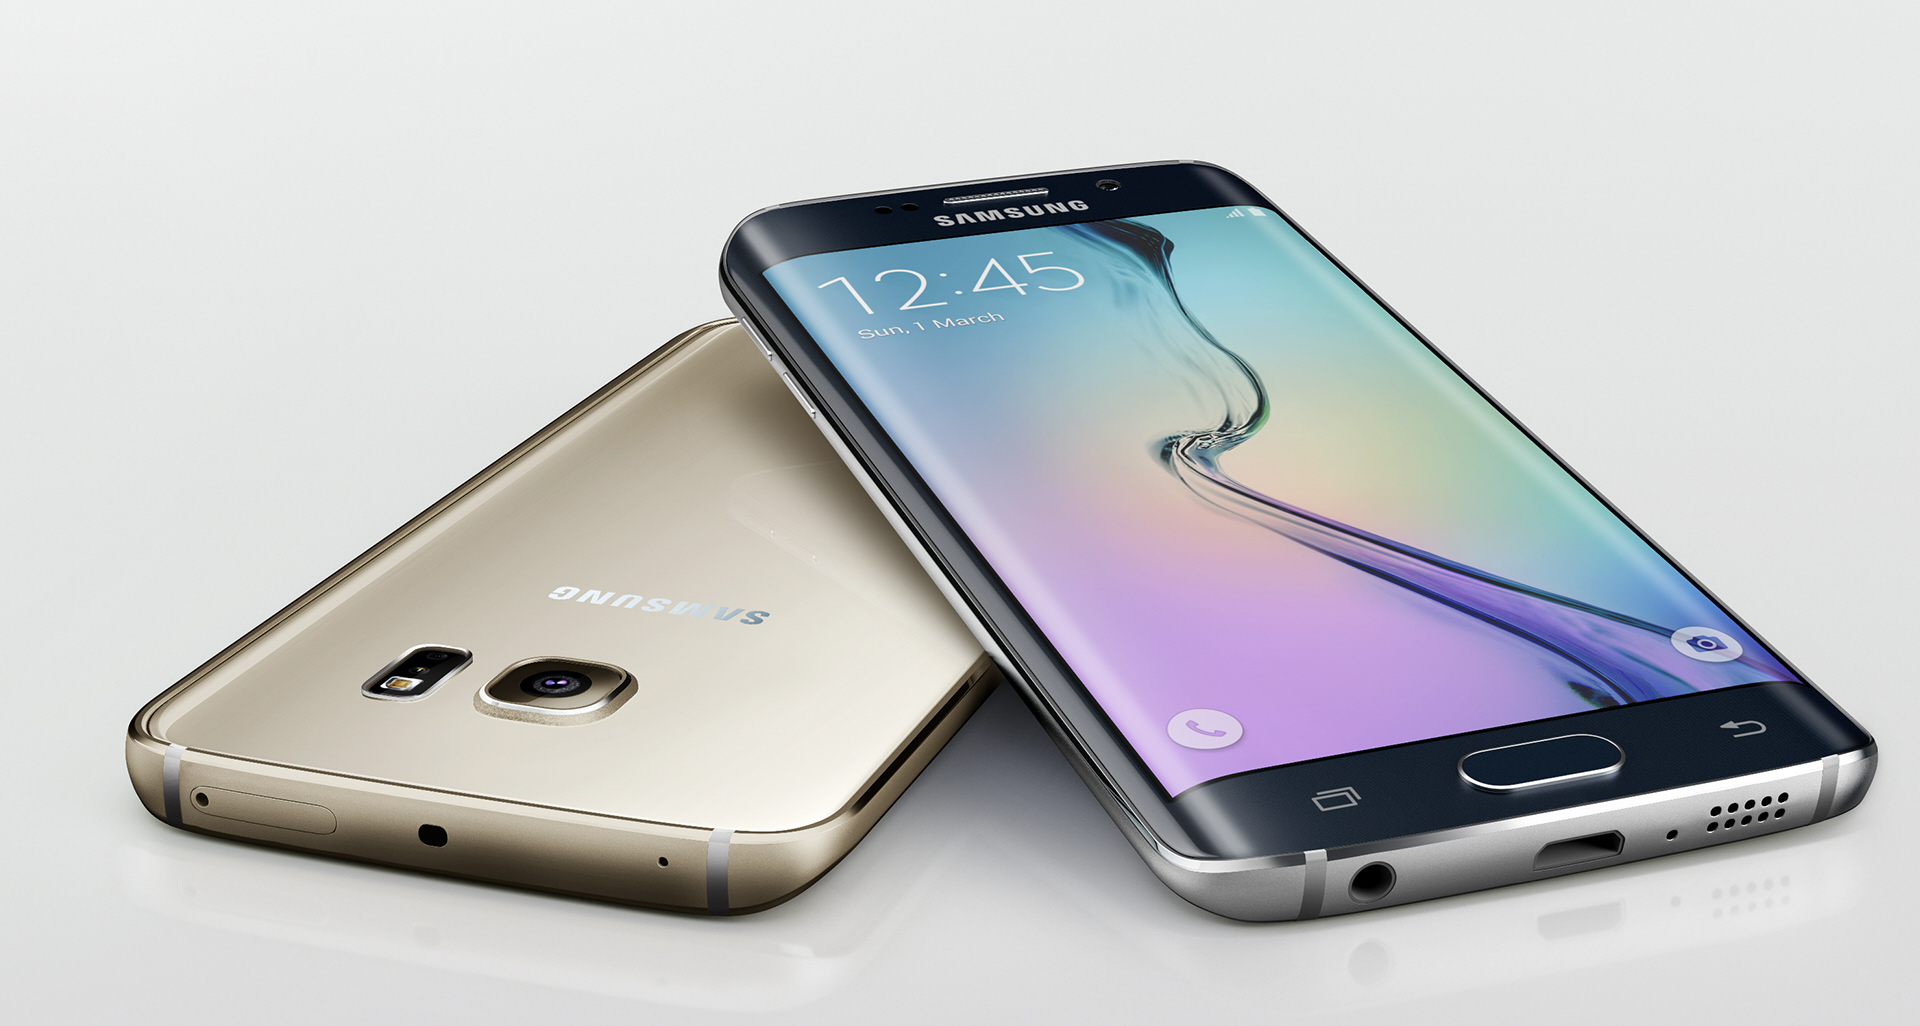 Best Buy Smartphone: Samsung Galaxy S6 Edge at $399.99, Motorola Moto X Pure at $349.99